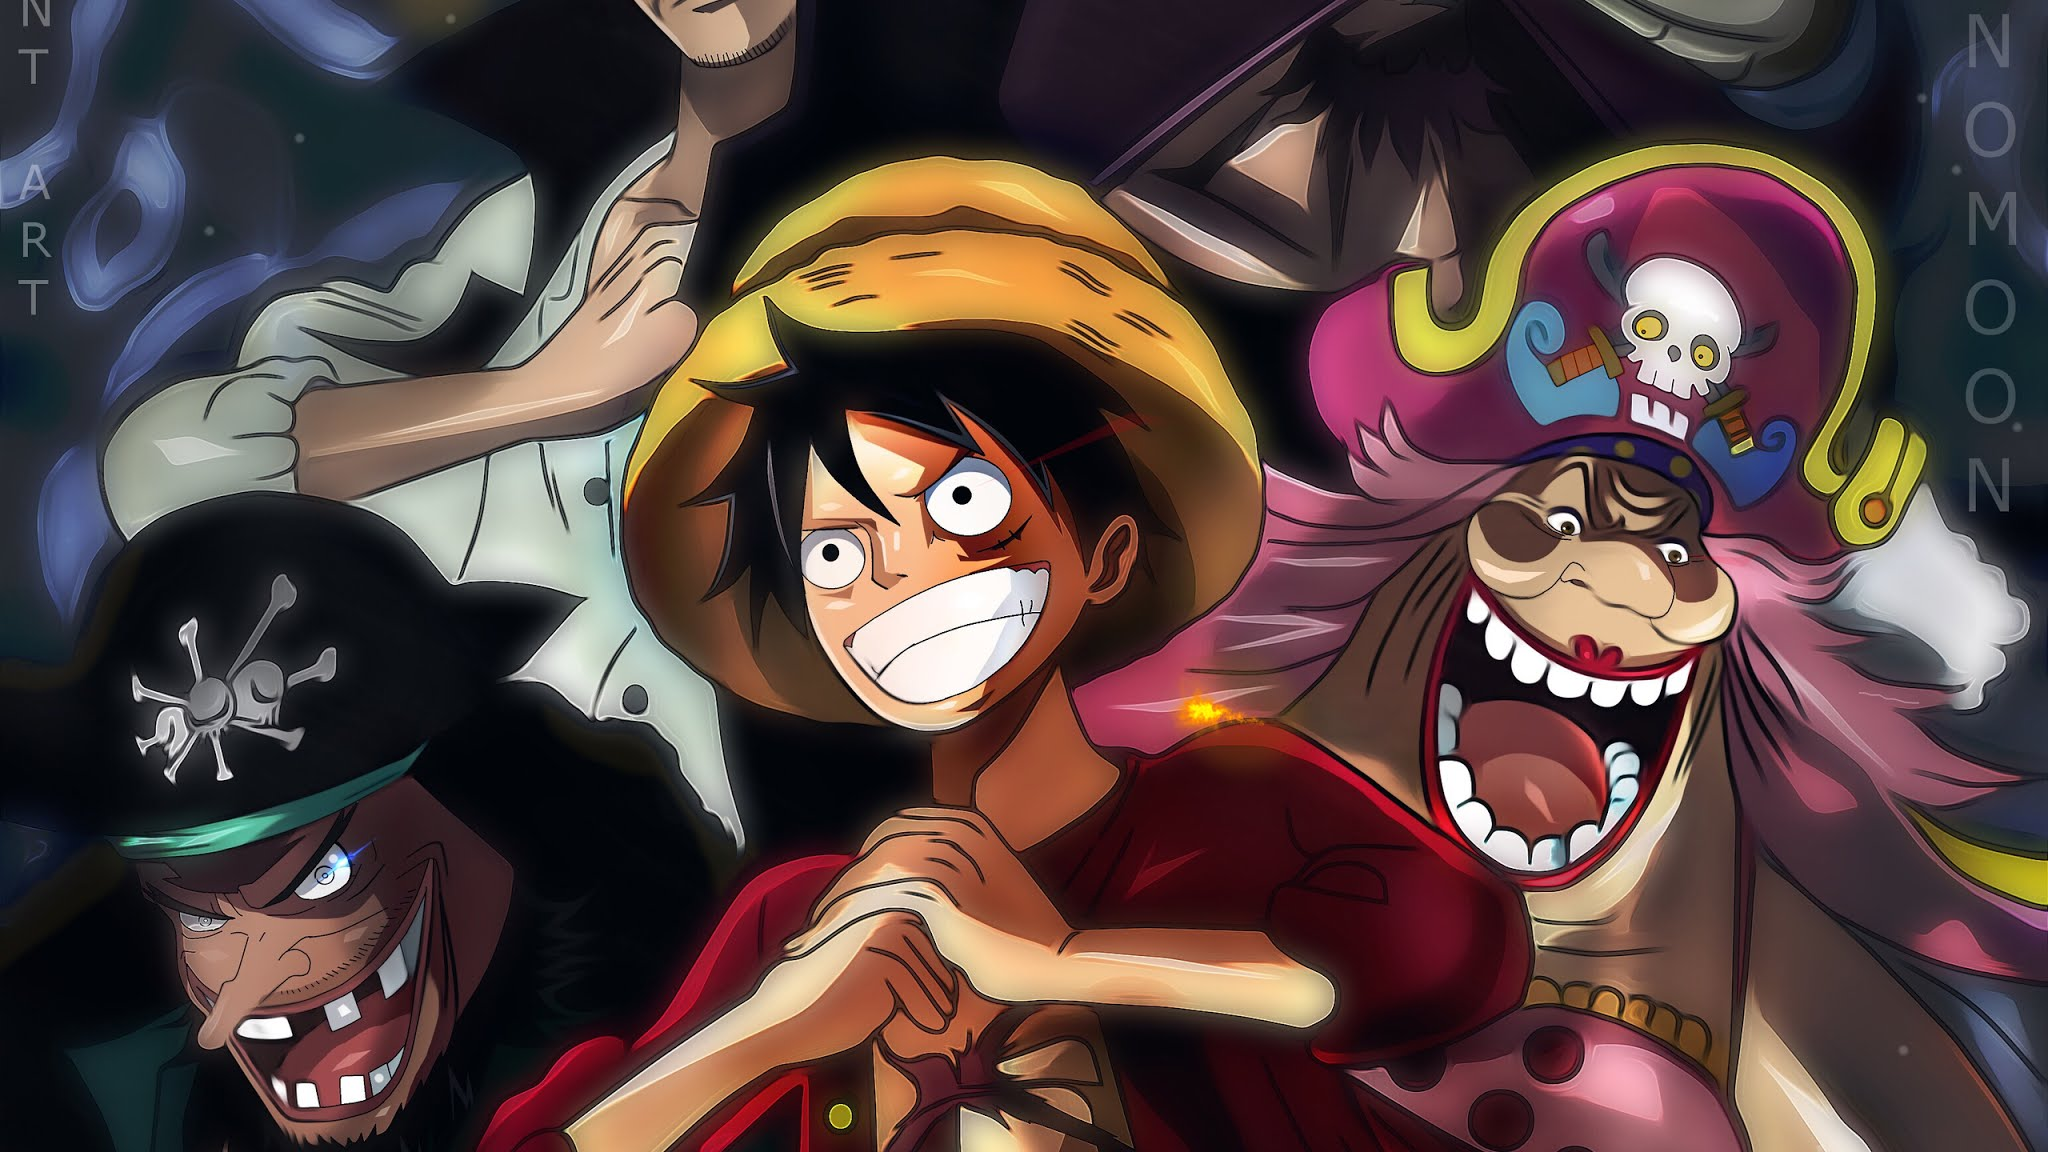 One Piece Chapter 991 Read Online, Full Summary, Spoilers and Raw Scans Leaks - BlockToro